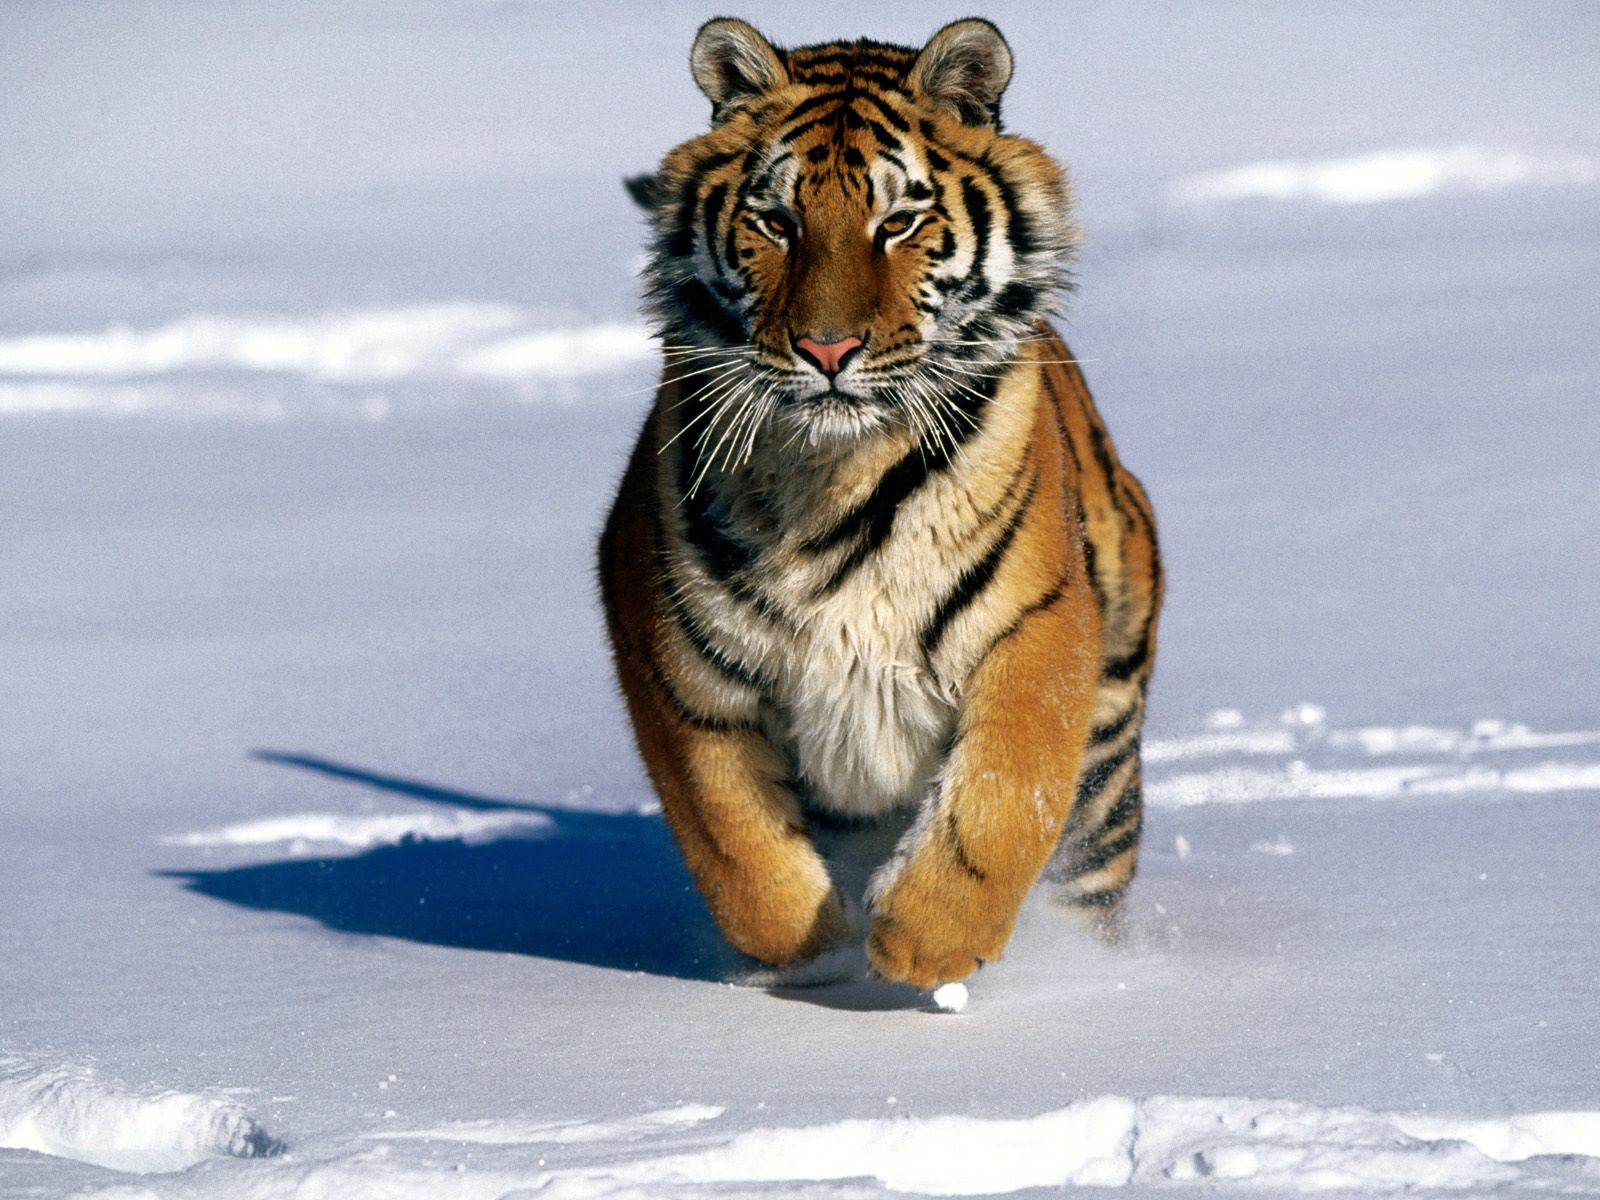 The World's Most Amazing and Crucial Endangered Species